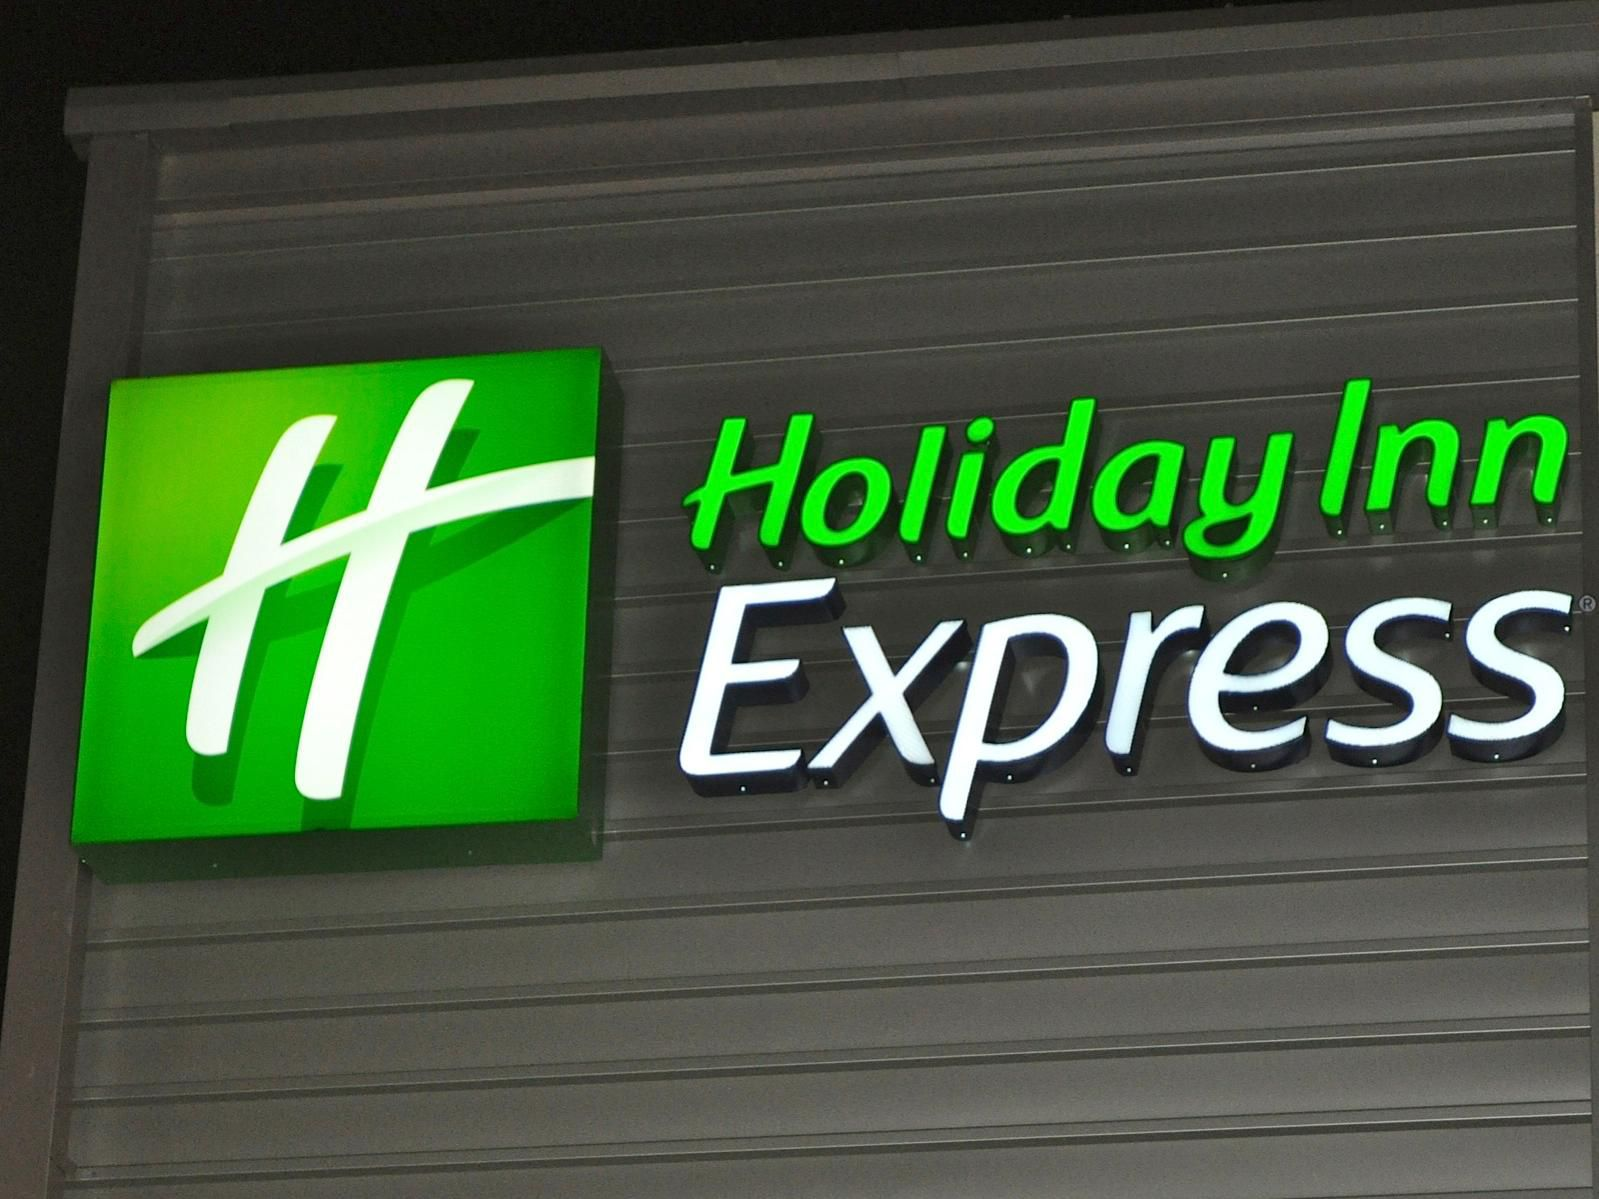 Holiday Inn Express Waterfront Mall